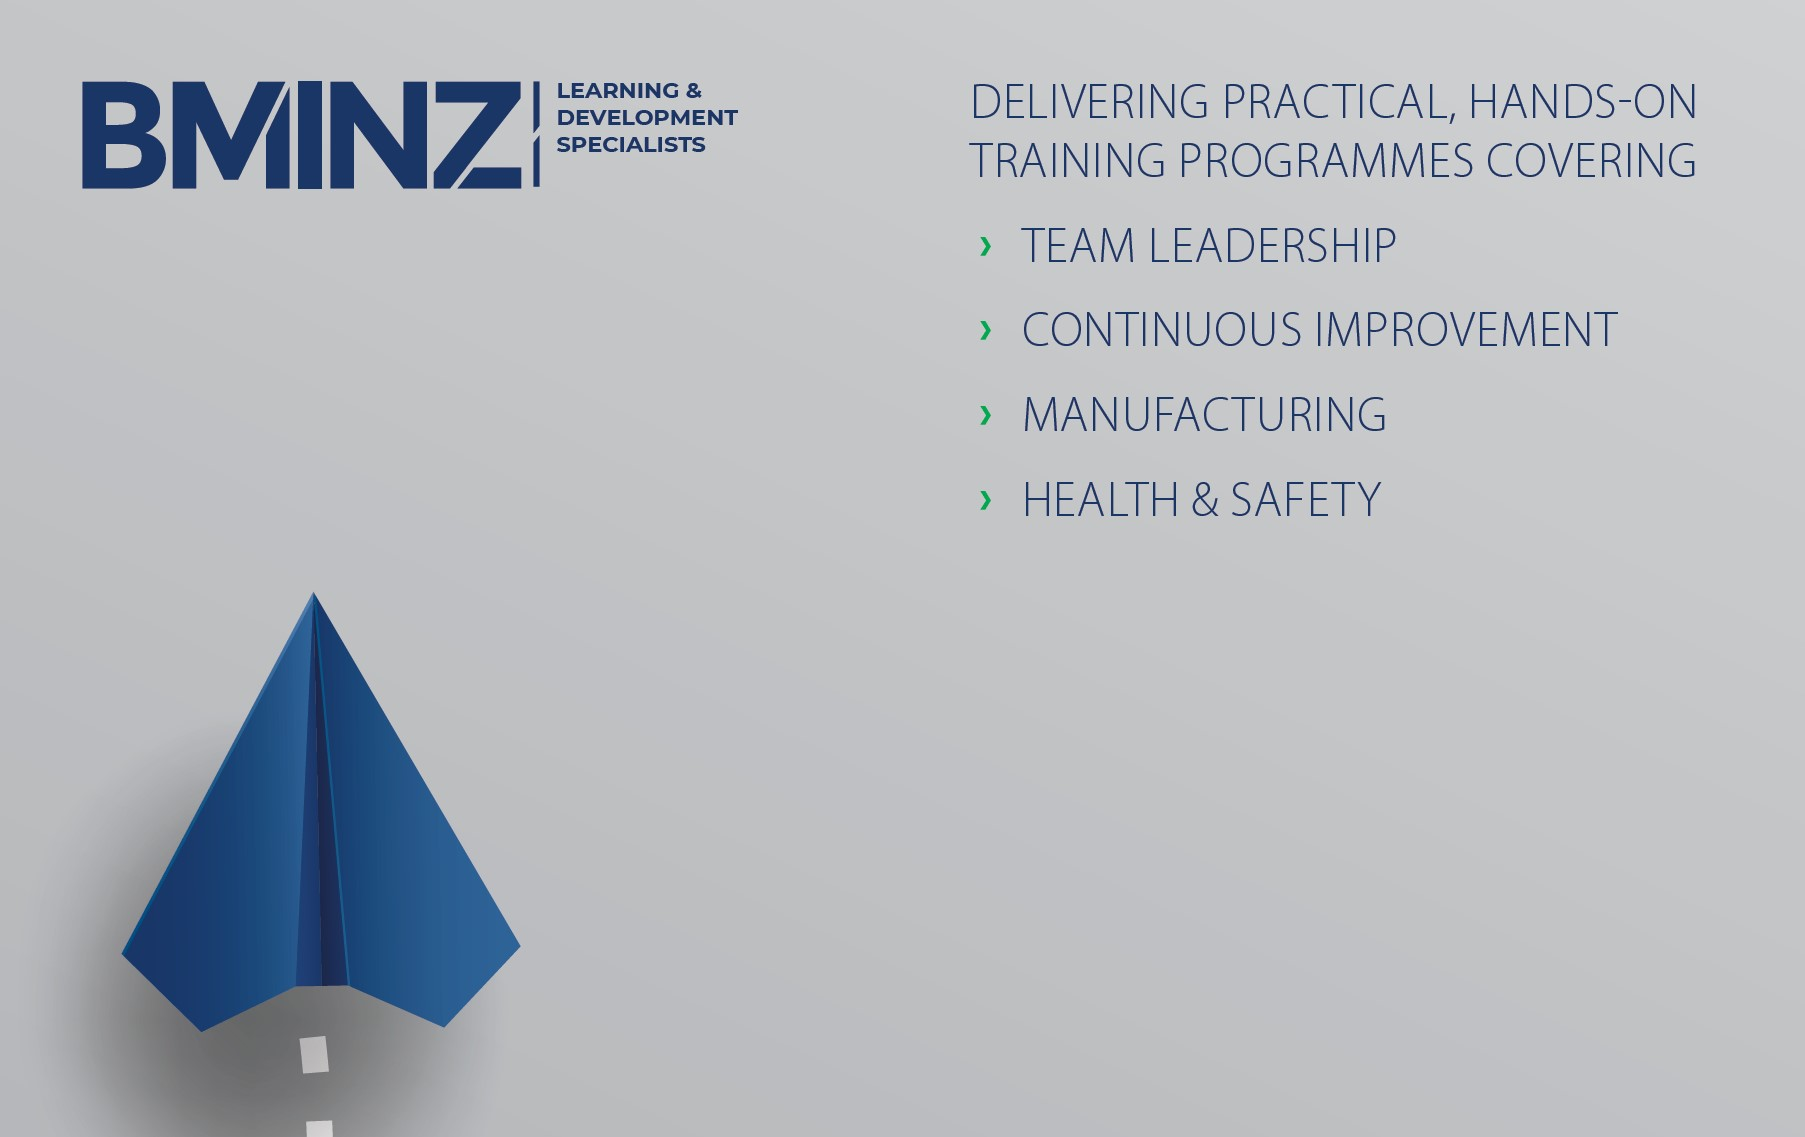 BMINZ DELIVERING PRACTICAL, HANDS-ON TRAINING PROGRAMMES